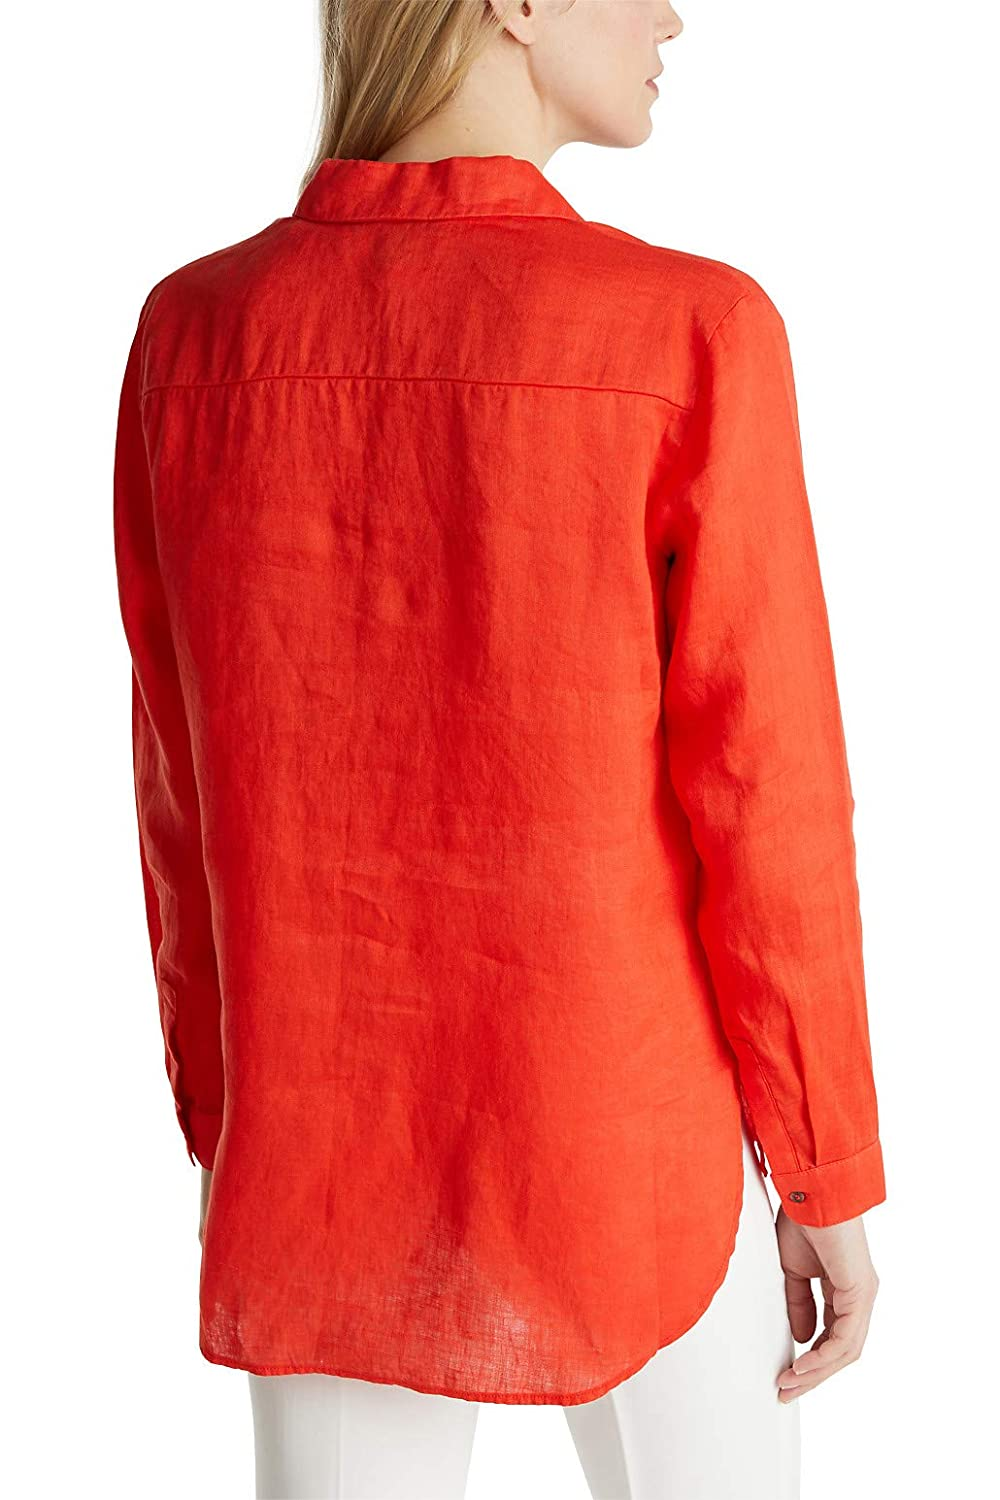 ESPRIT kollektion dam blus 825/röd orange